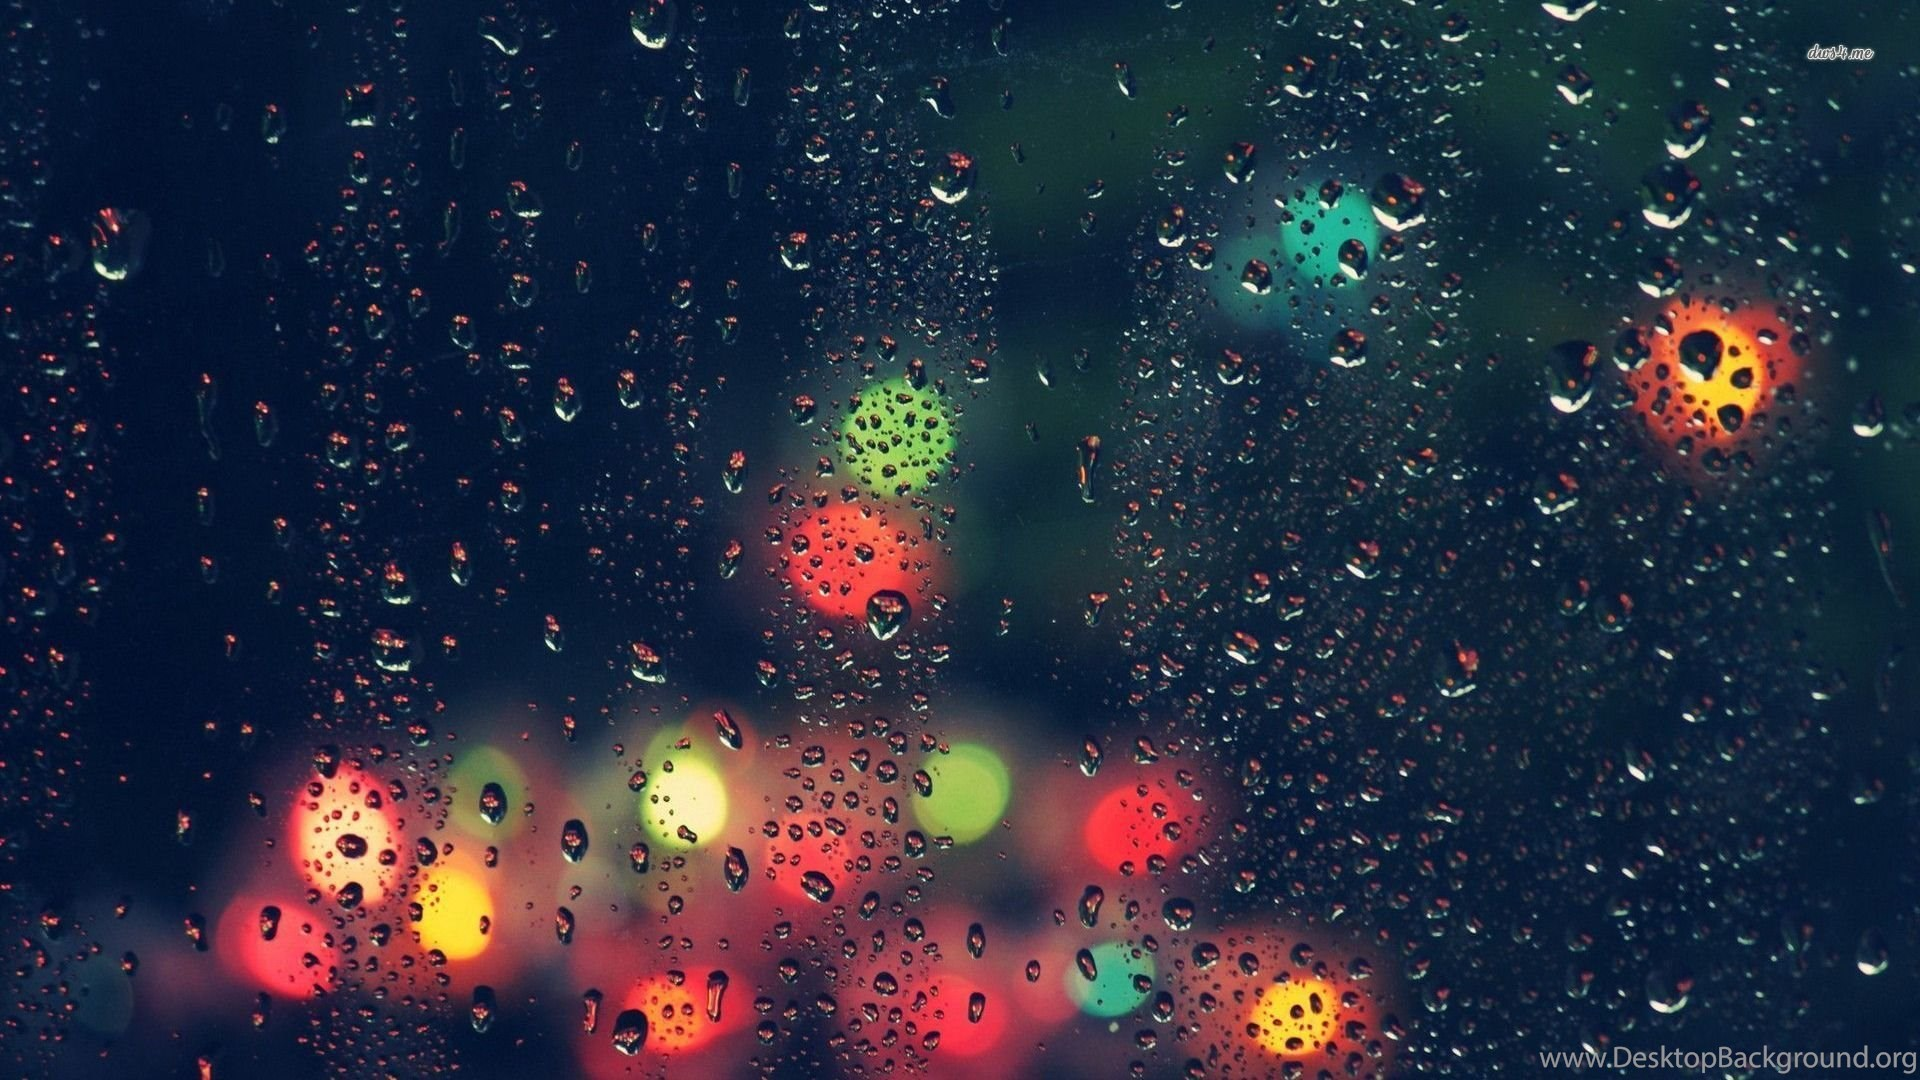 City Lights Beyond The Rainy Window Wallpapers Photography